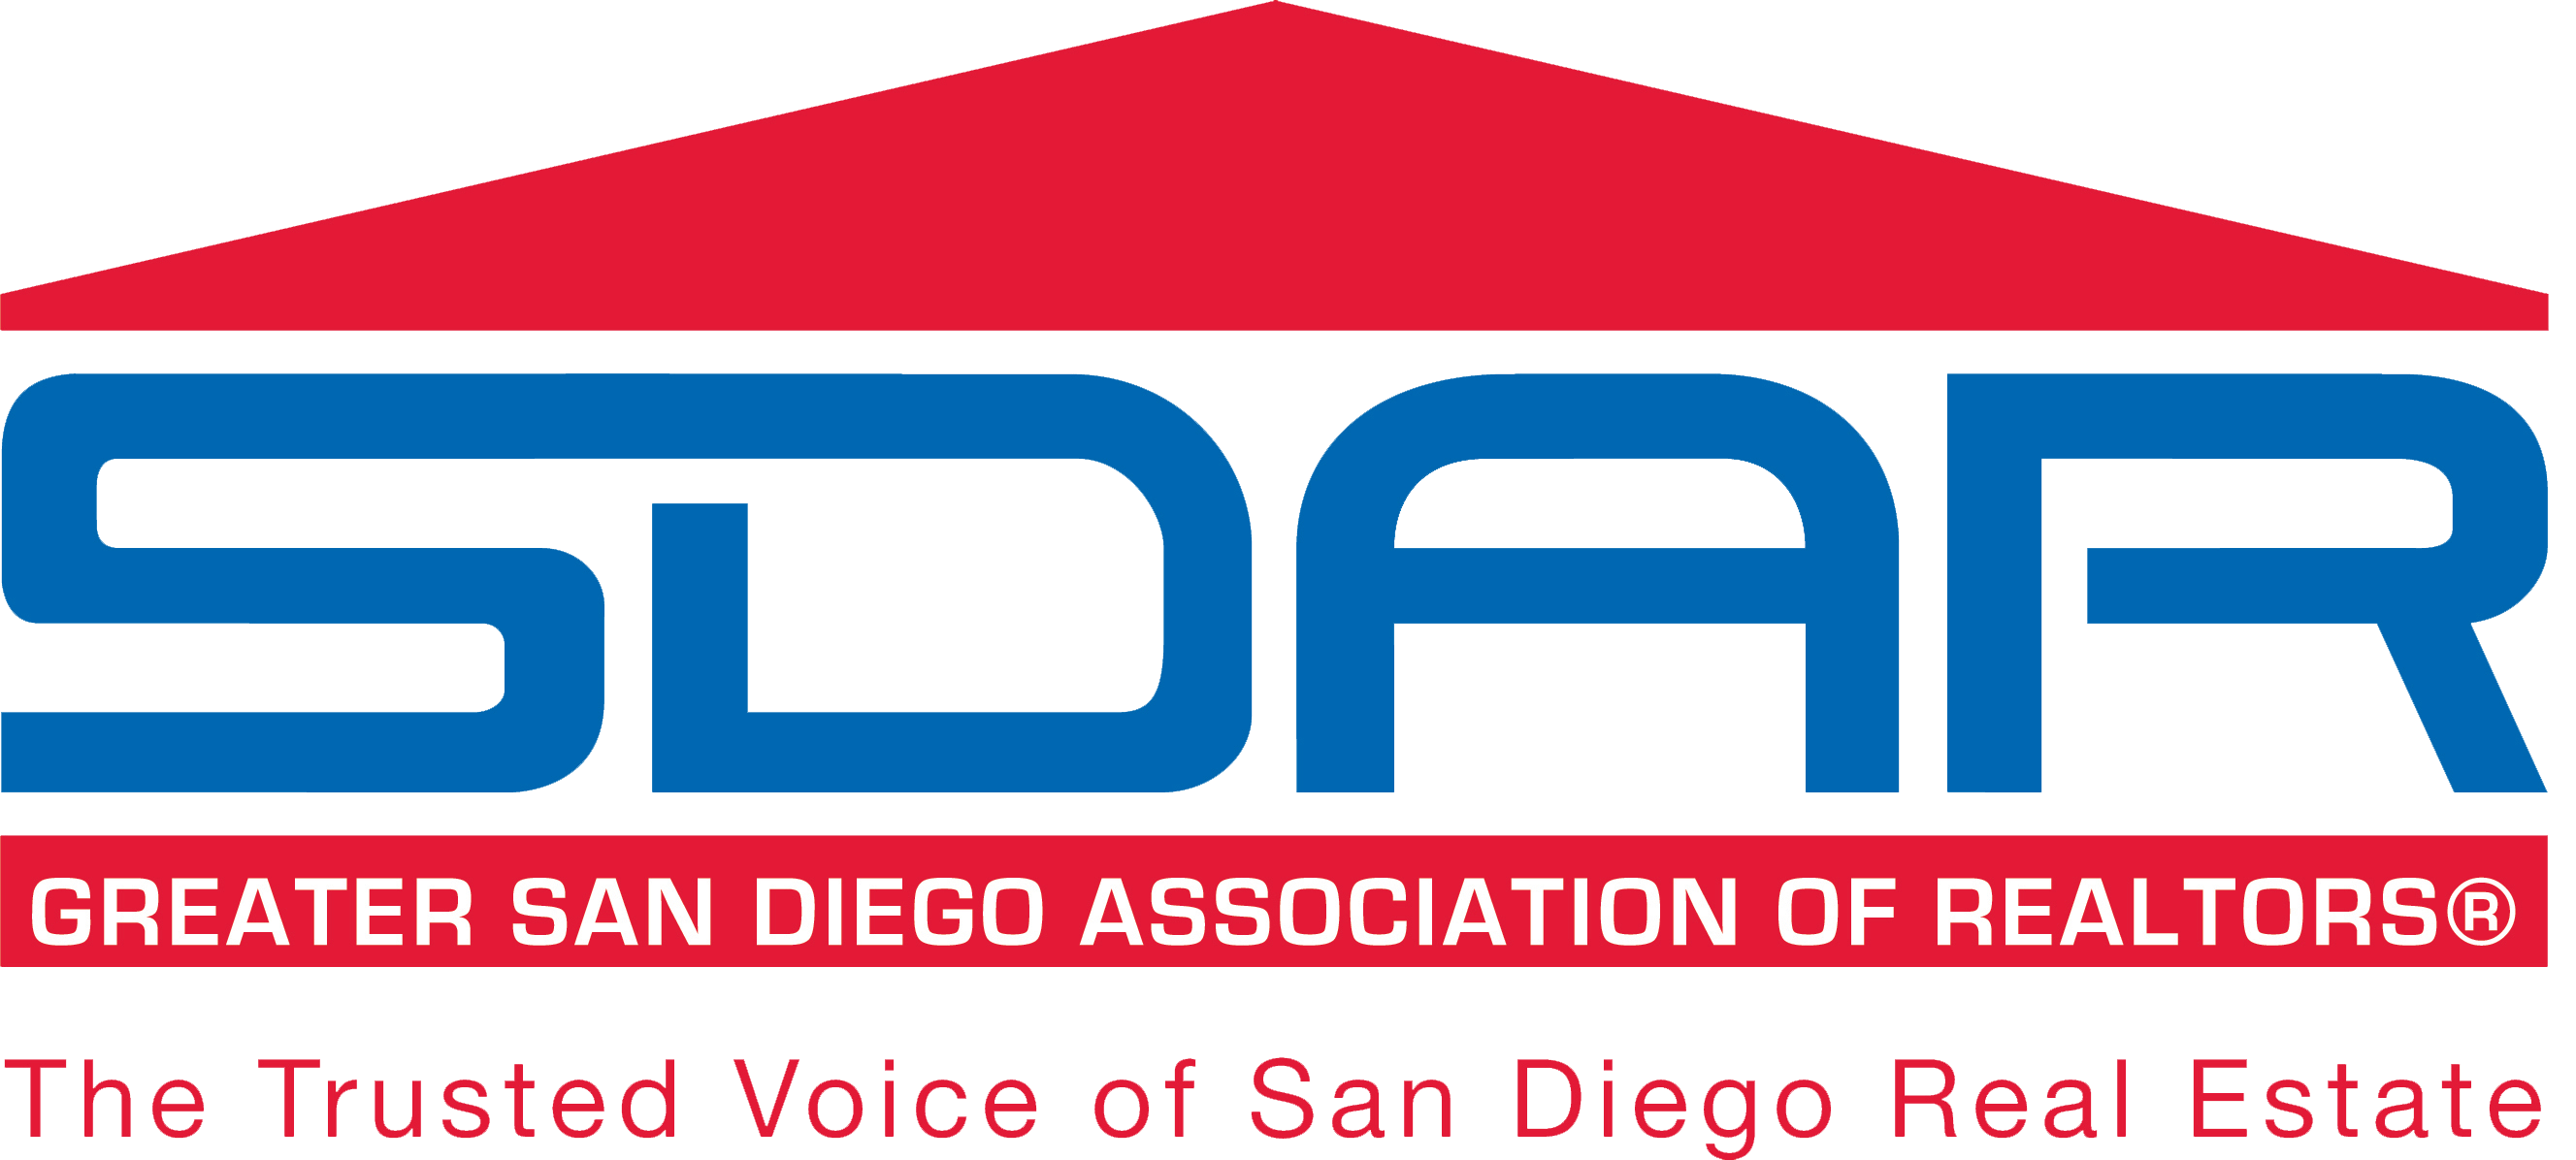 Greater San Diego Association of REALTORS® and San Diego MLS Launch New Member Portal Powered by MMSI